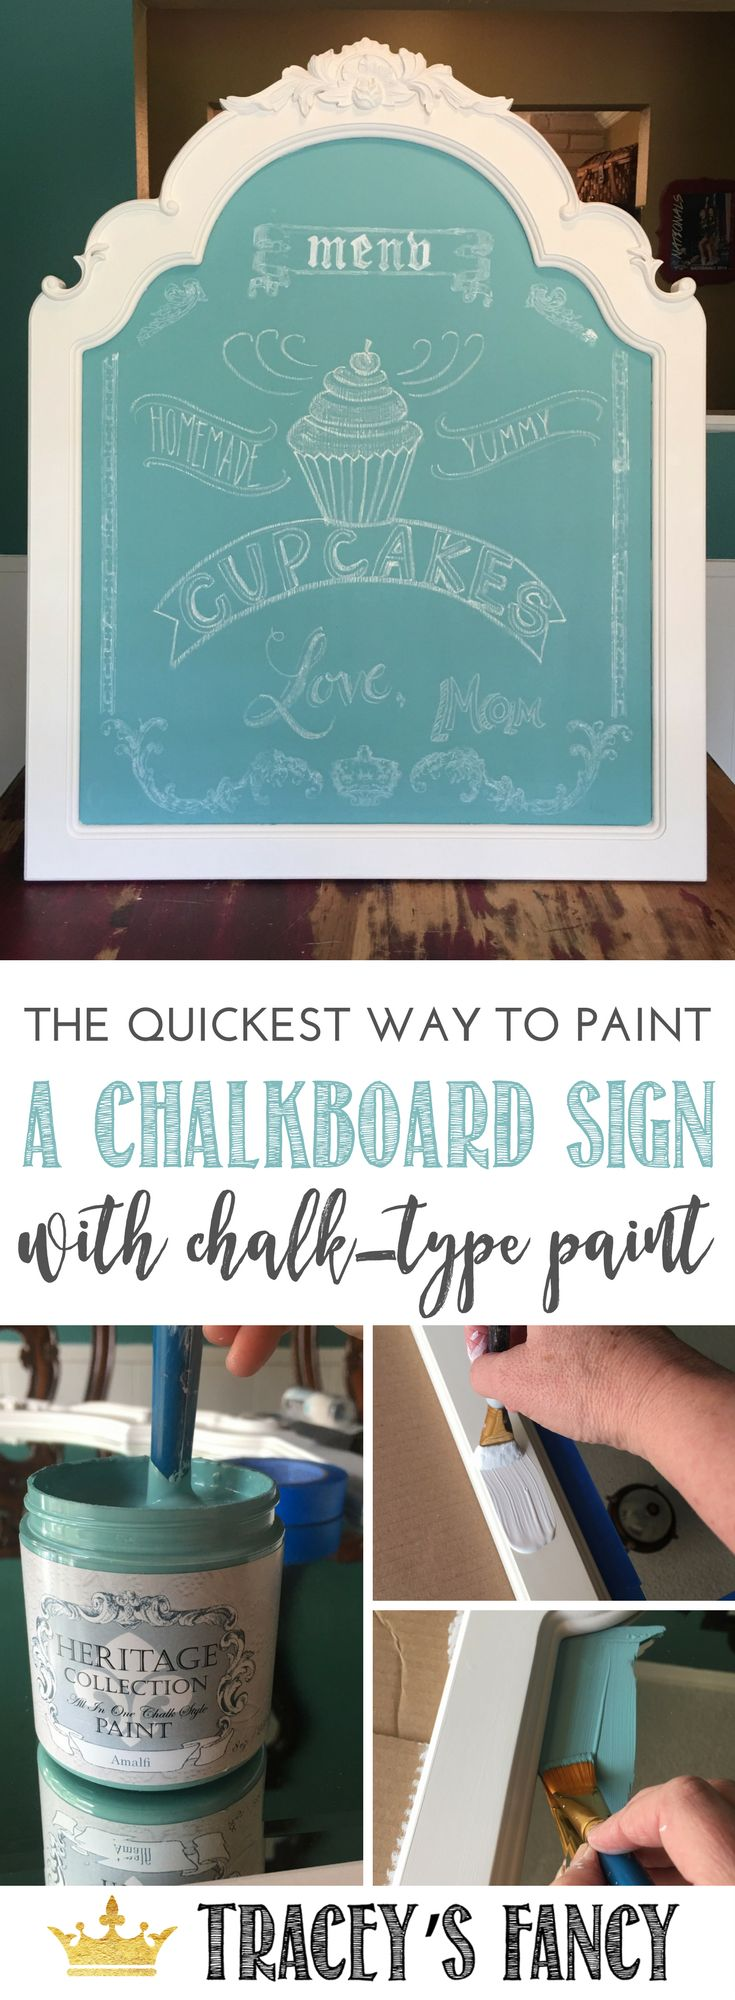 Furniture Painters - I have a great idea for your leftover mirrors from bedroom sets. Just upcycle a Mirror into a chalkboard sign - it's super fast with this new all in one chalk style paint by Heirloom Traditions . Furniture Painting Tips by TraceysFancy | DIY Chalkboard projects | Upcycled Projects | Chalkboard Menu | Gift Ideas | Wall Signs |  | Repurposed Furniture Ideas | Furniture Flips